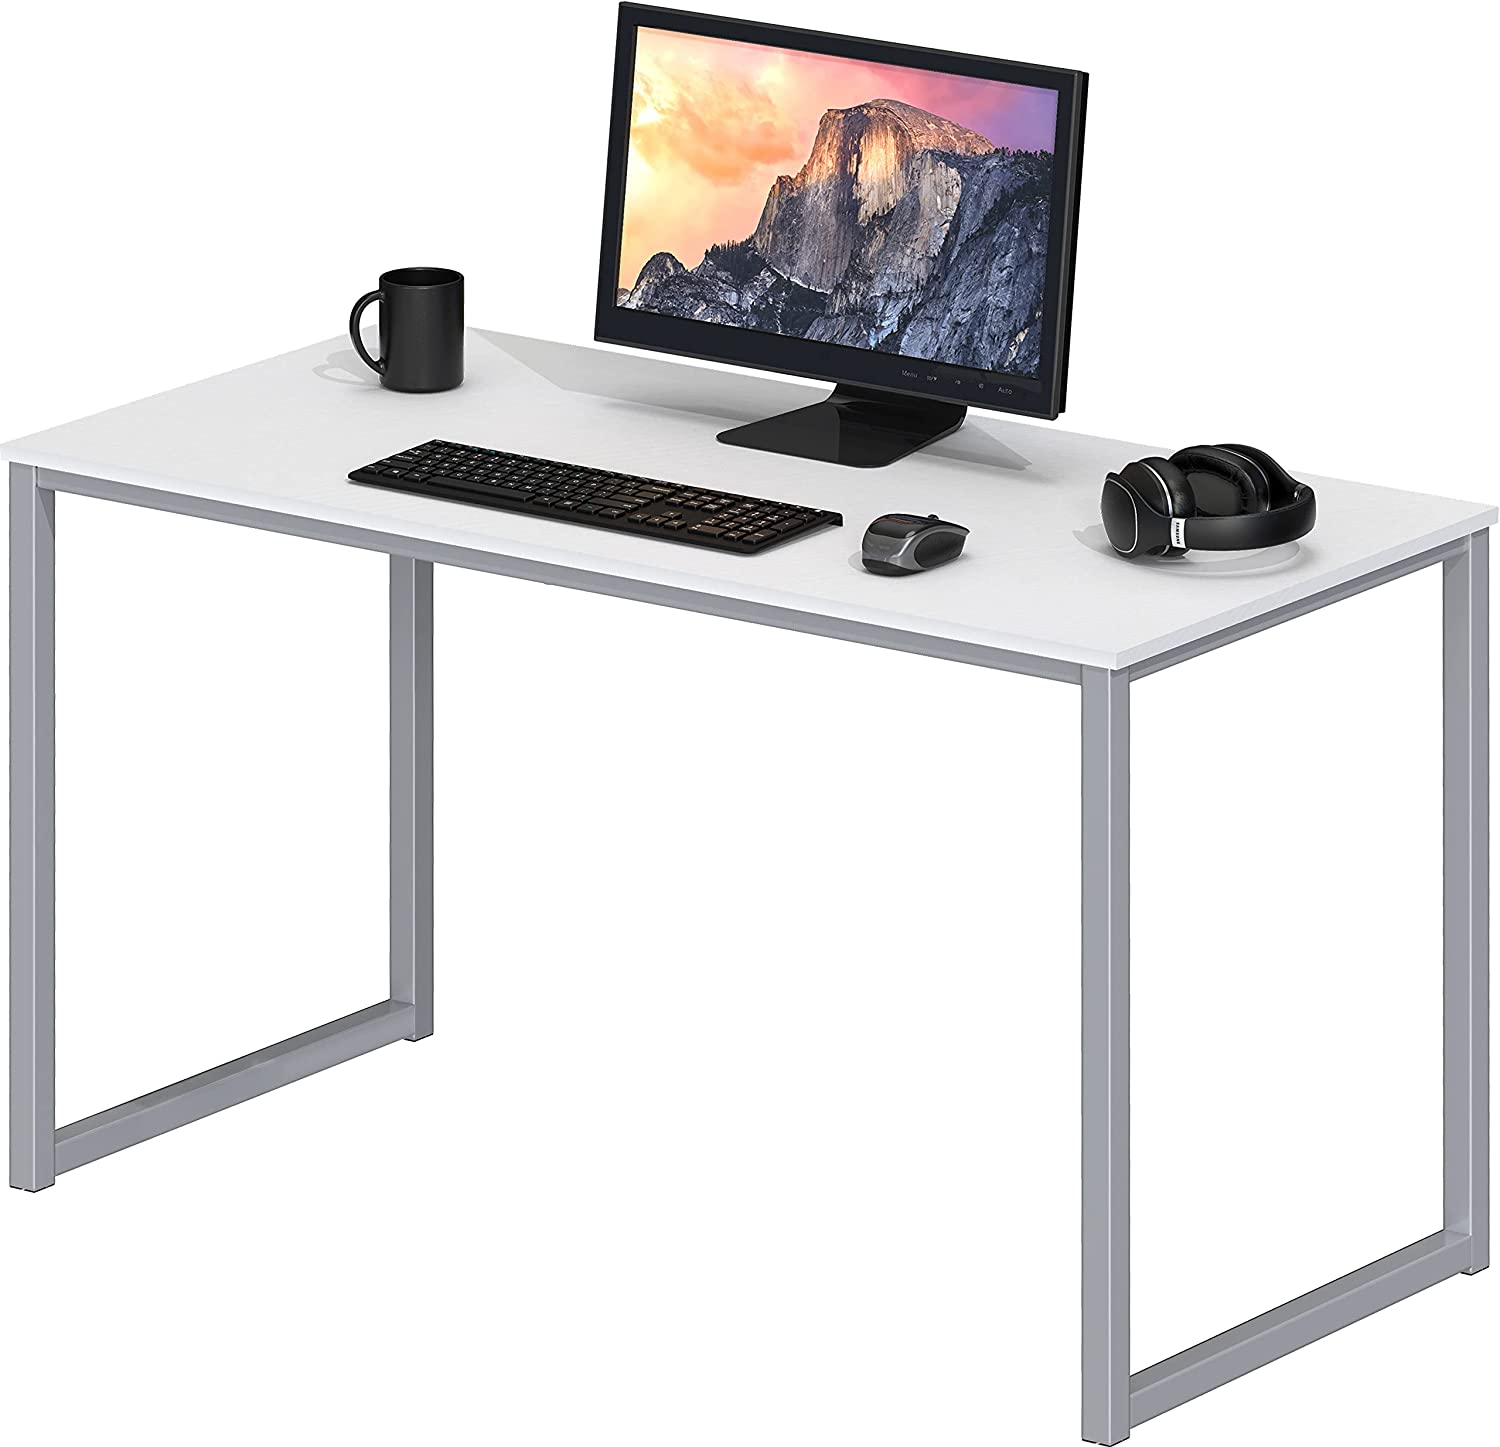 SHW Home Office 40-Inch Computer Desk, White